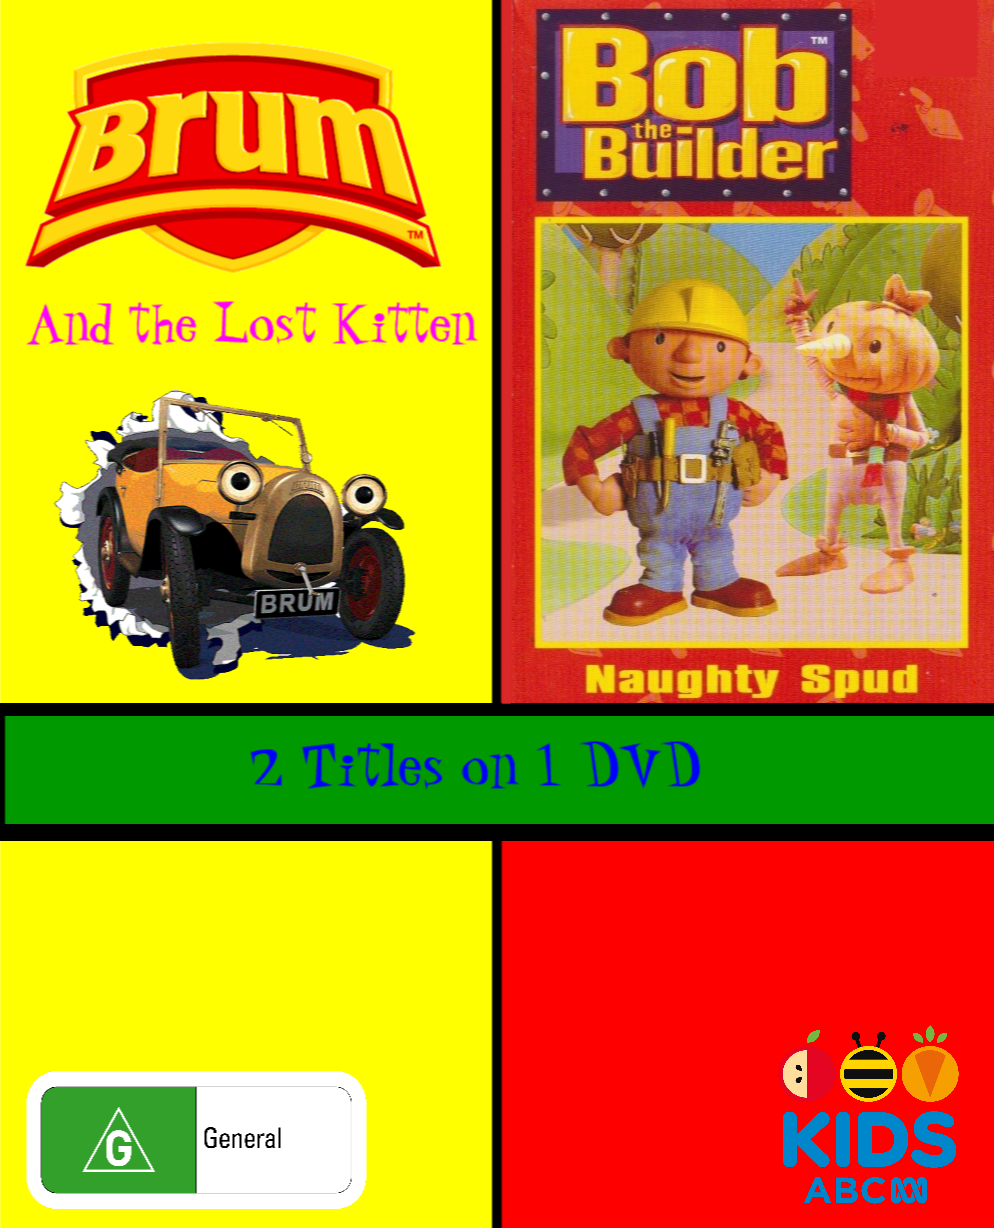 Brum and Bob the Builder - Brum and the Lost Kitten and Naughty Spud (video)